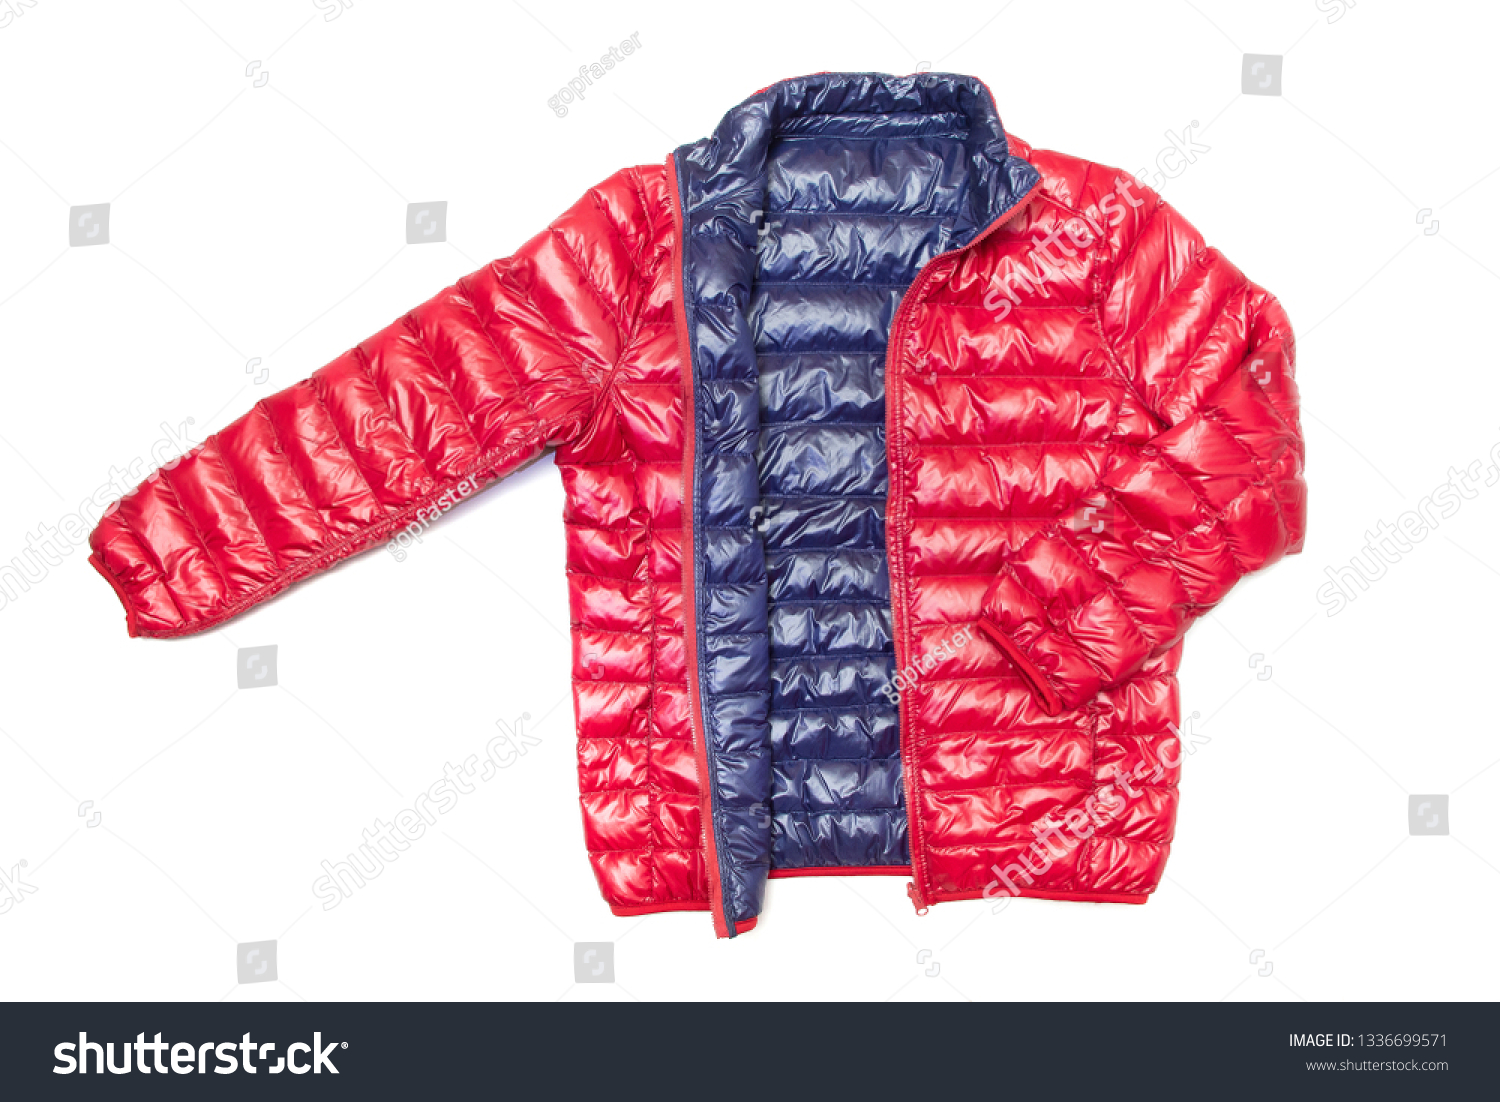 ฺBlue and red full zipper windbreaker down jacket, rain proof down jacket. Down jacket sport shiny nylon full zip isolated on white.  #1336699571